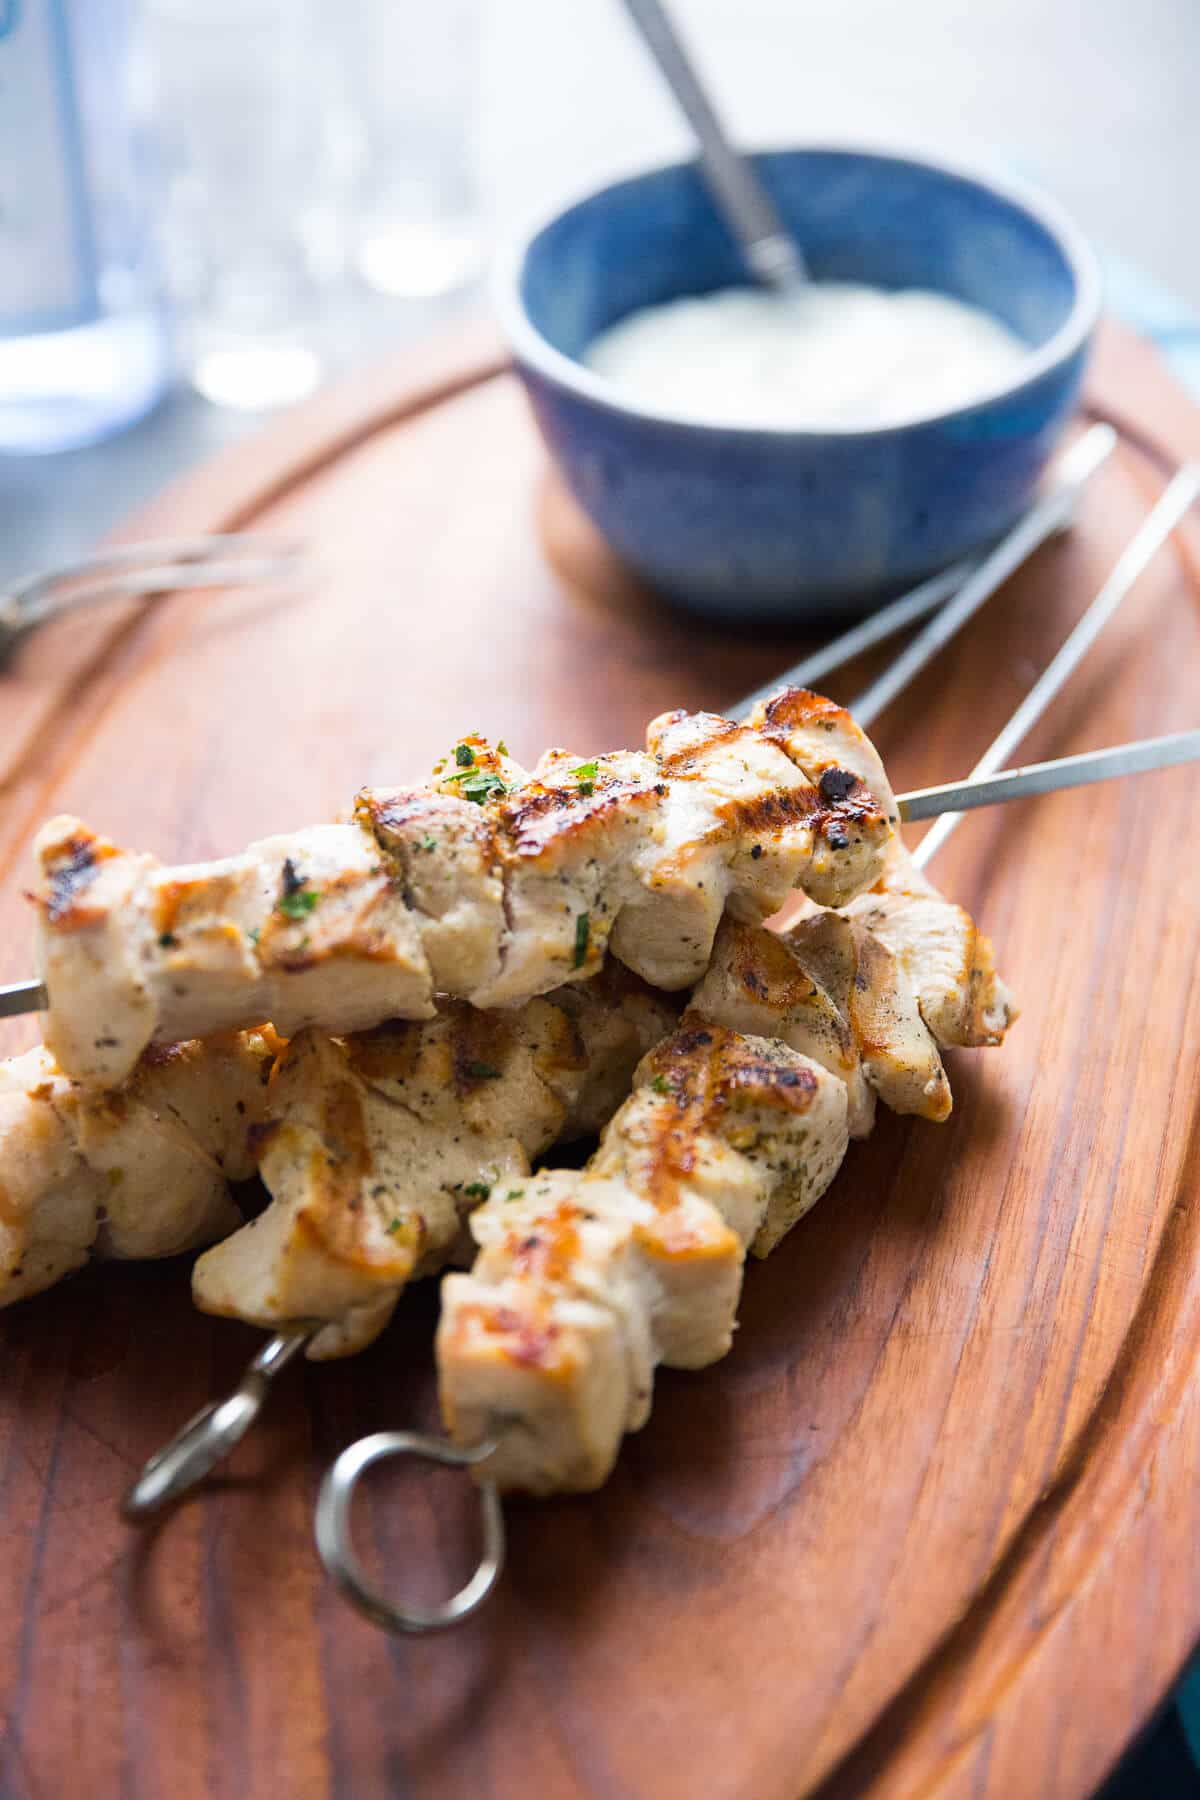 Greek chicken souvlaki recipe on the grill is a great weeknight meal option. The skewers take minutes to grill up!